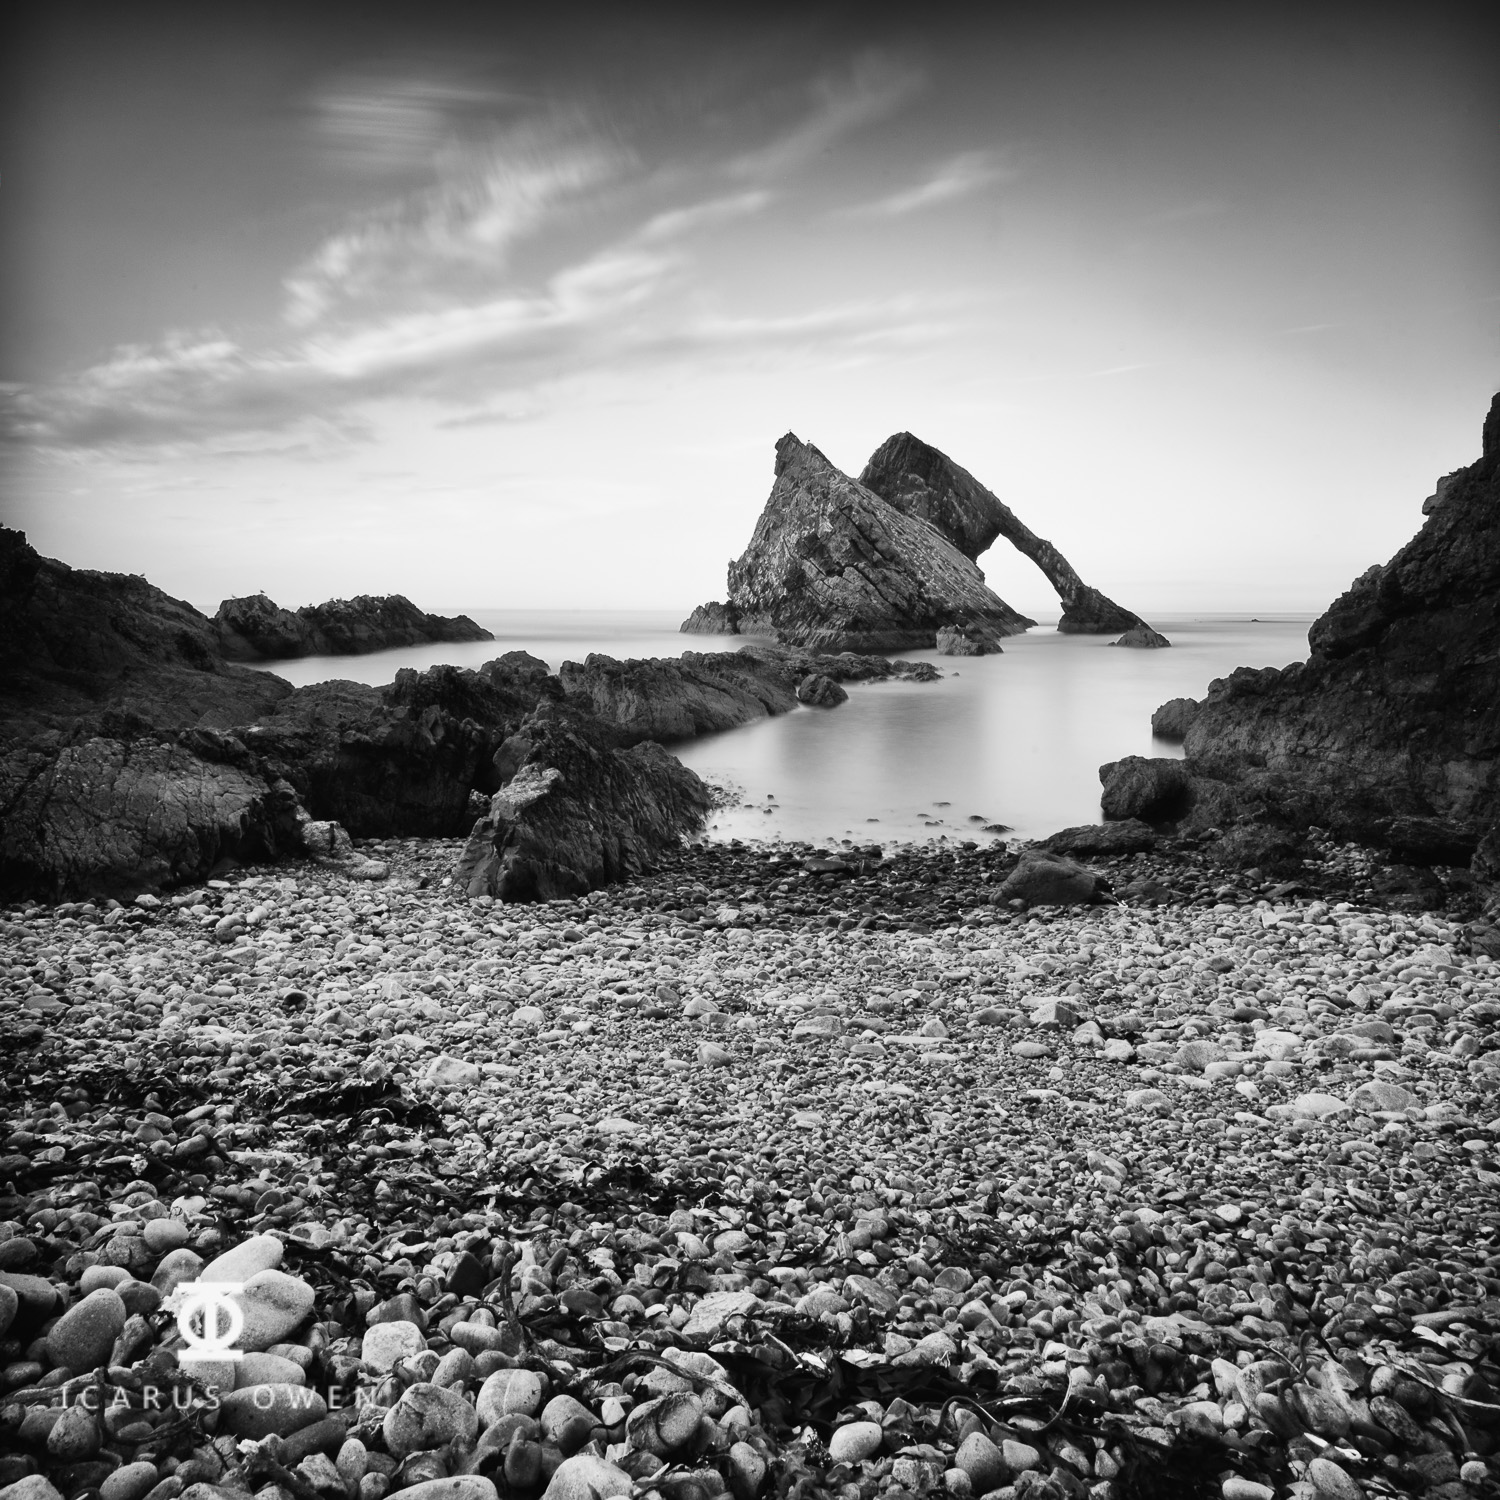 Bow Fiddle Rock - Icarus Owen.jpg